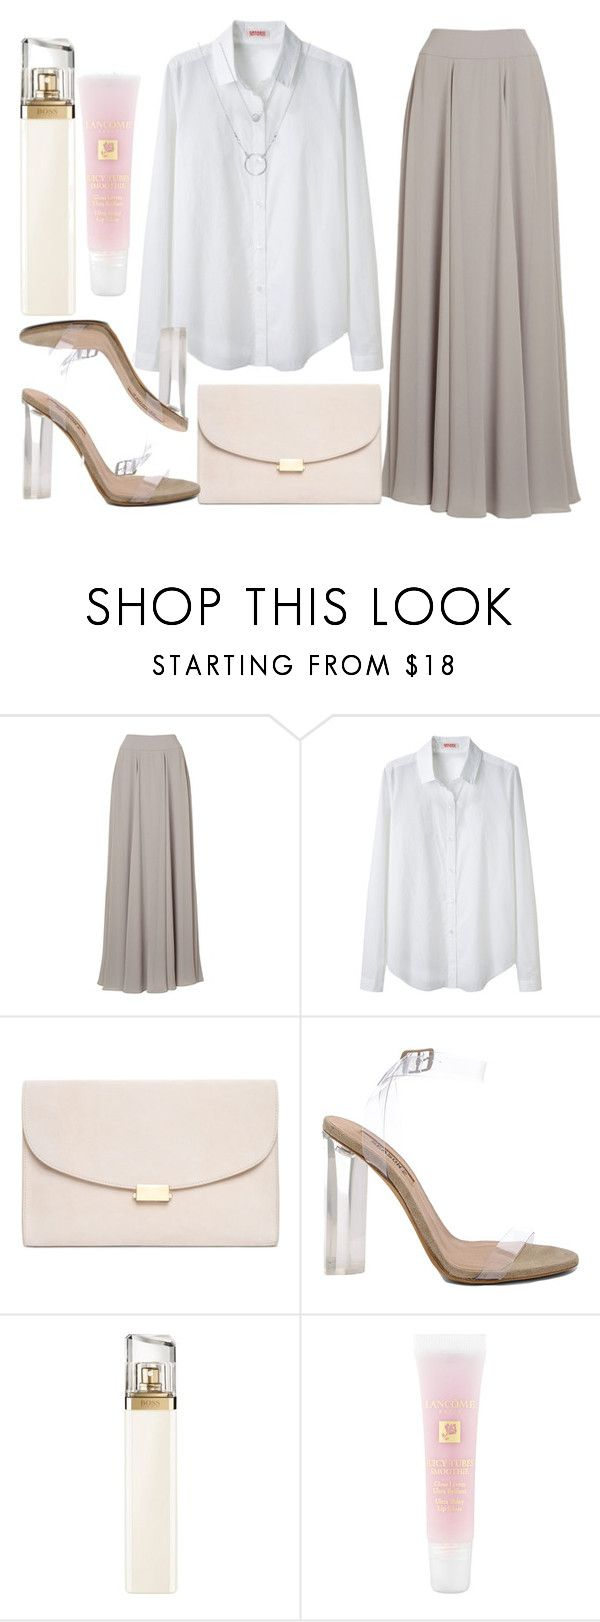 """""""Freestyle"""" by hiddensoulmemories ❤ liked on Polyvore featuring Jacques Vert, Organic by John Patrick, Mansur Gavriel, adidas, HUGO and Lancôme"""